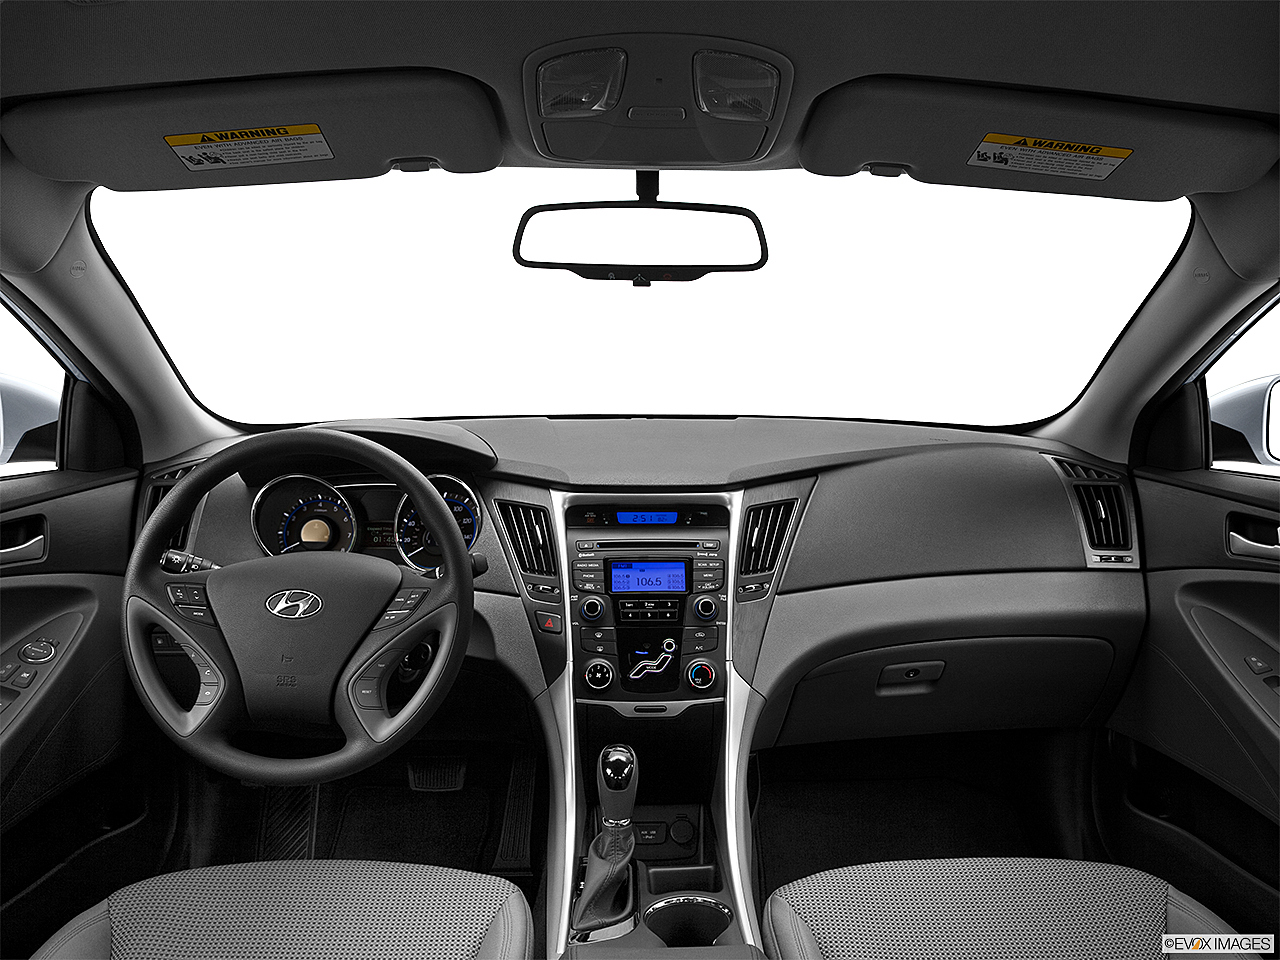 2013 Hyundai Sonata GLS, centered wide dash shot